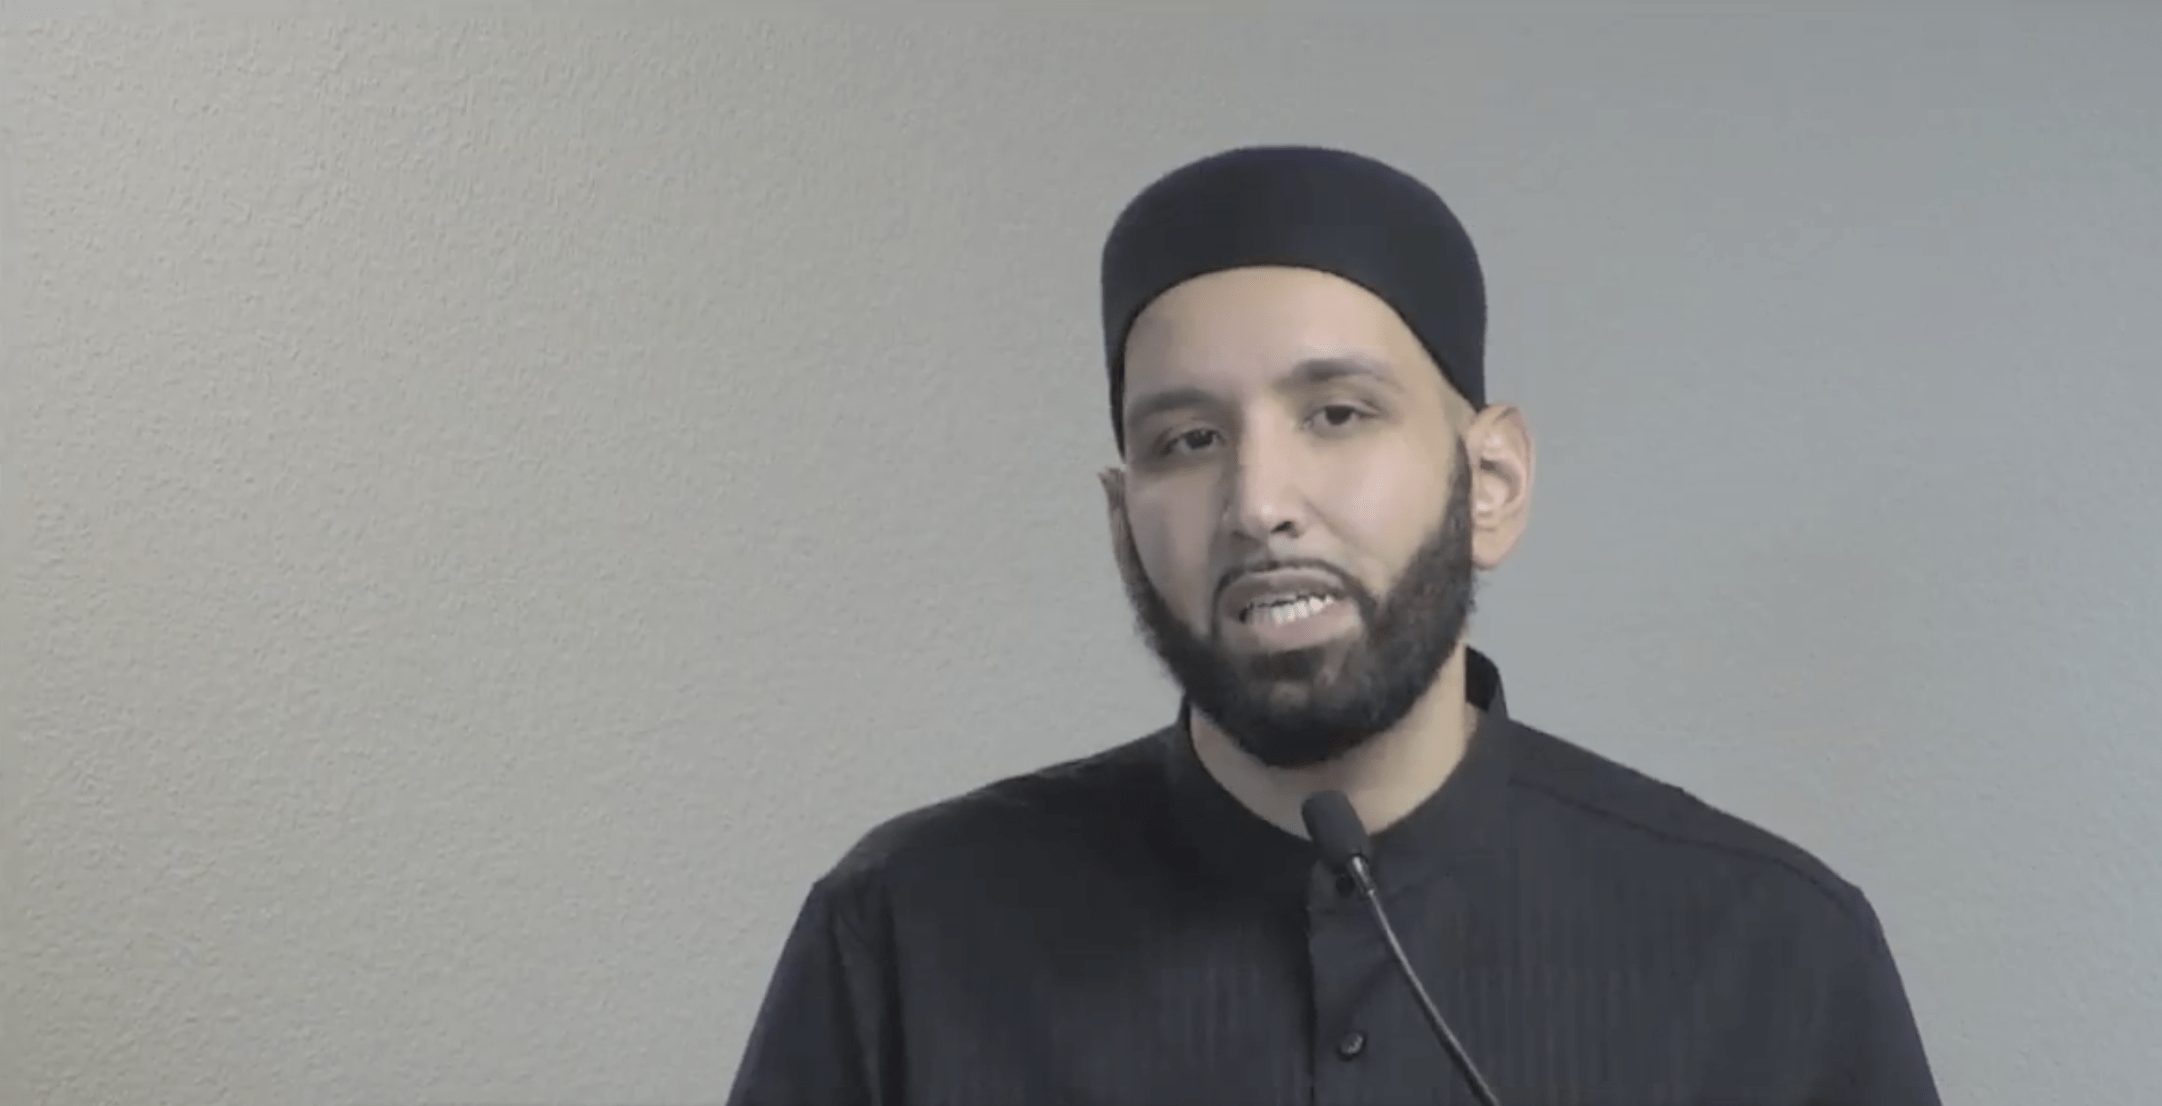 Omar Suleiman – Hadith Of The Sinking Ship and Staying Afloat As a Community